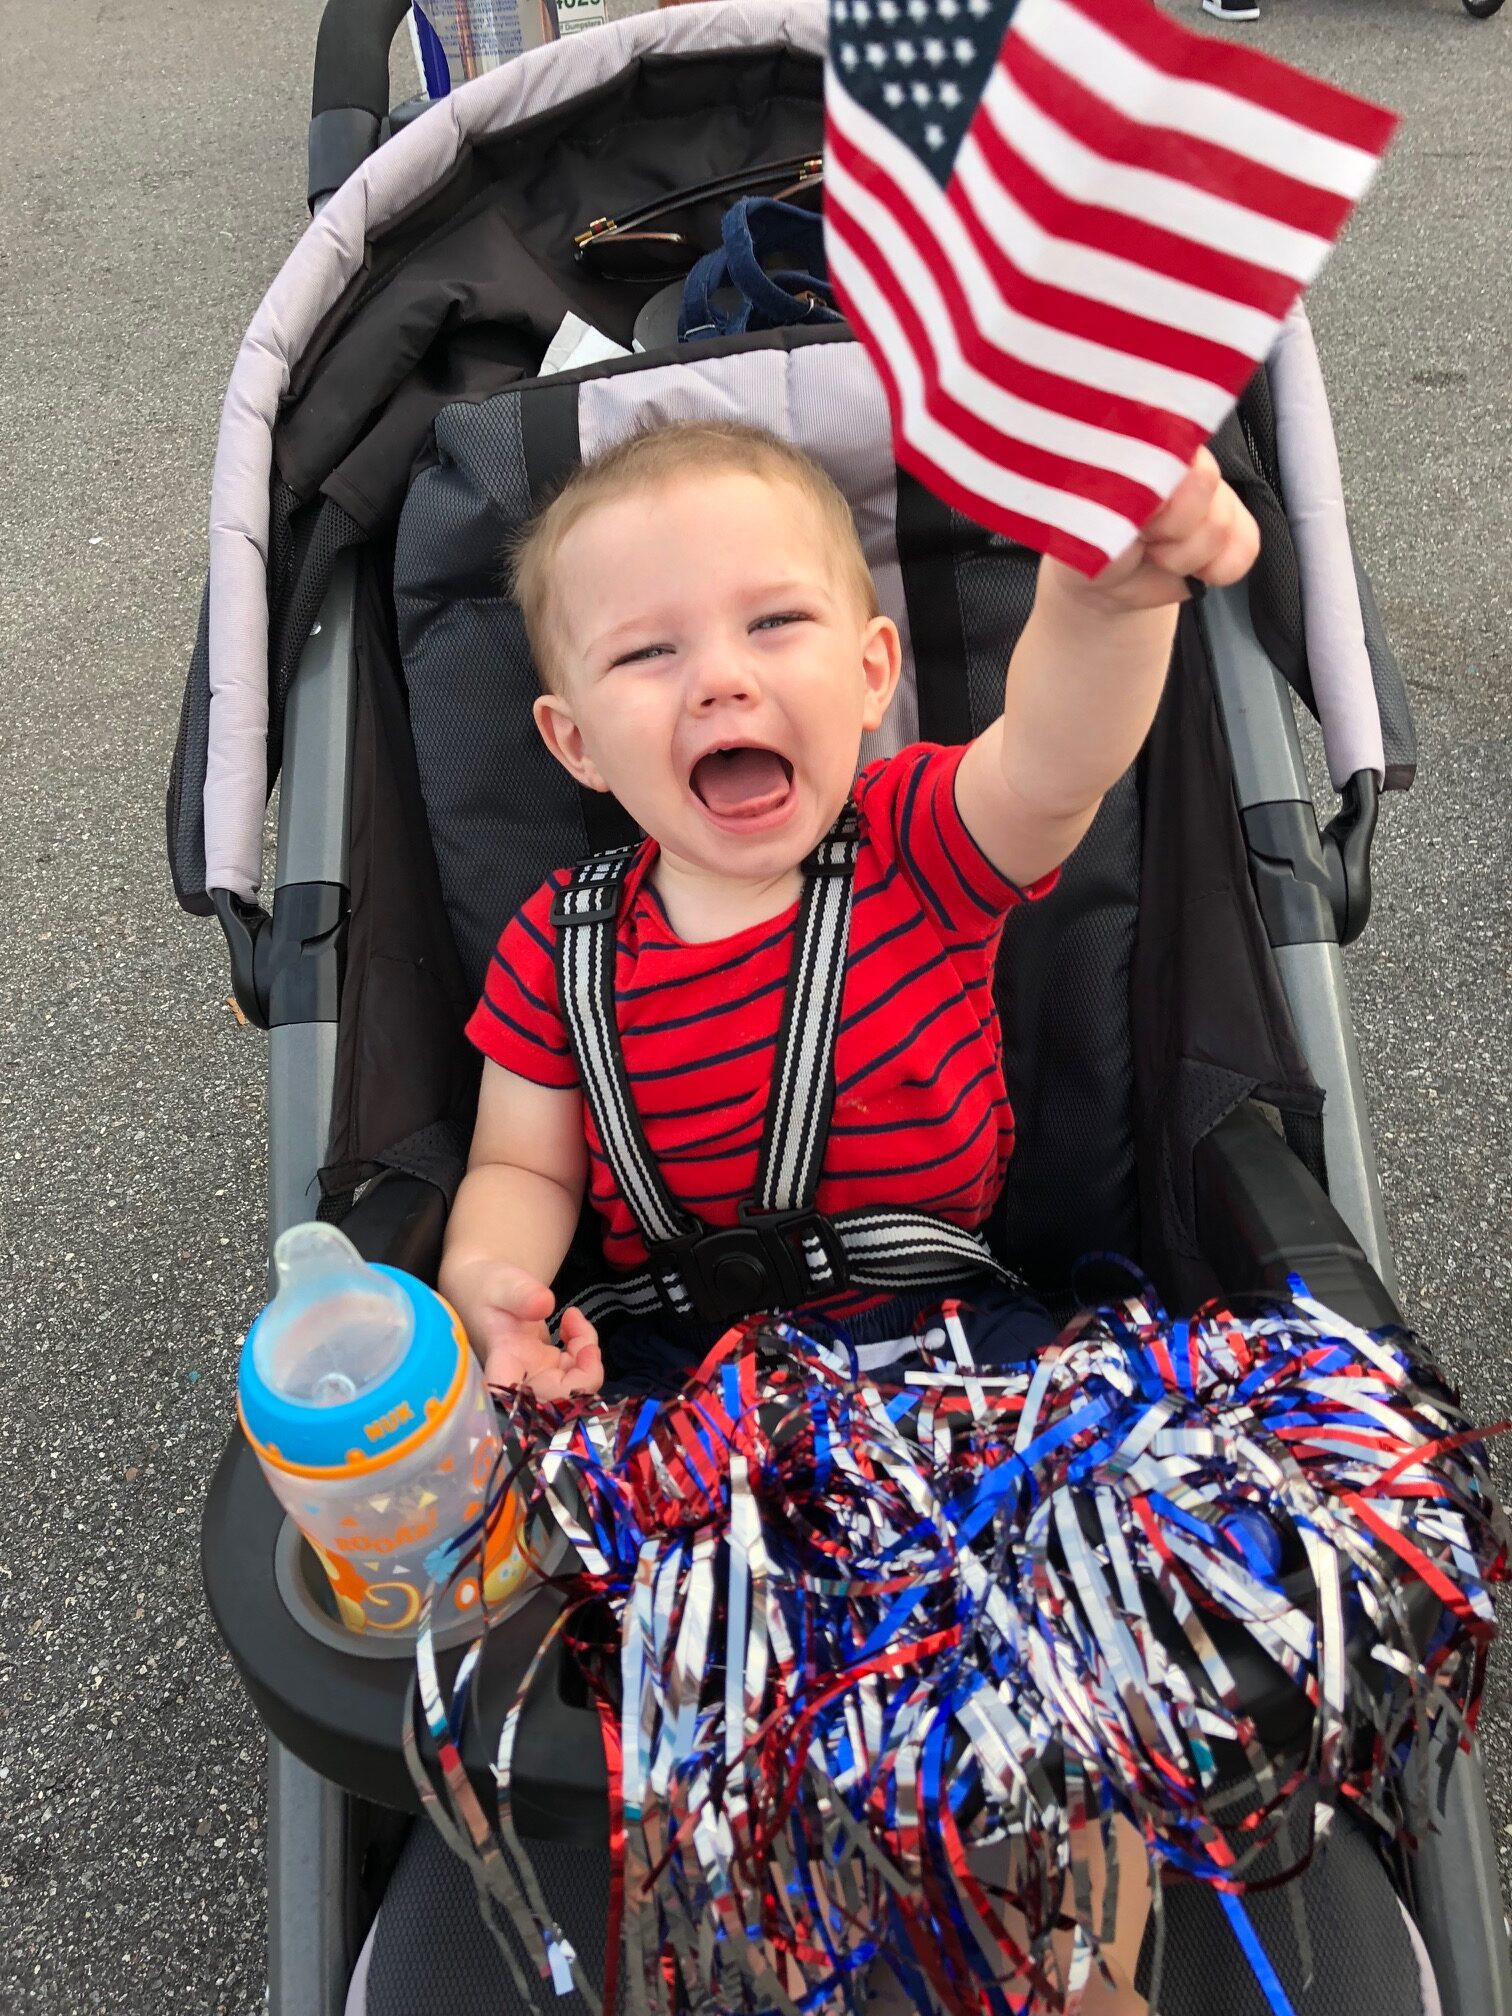 Baby in stroller holding an American flag, color photo